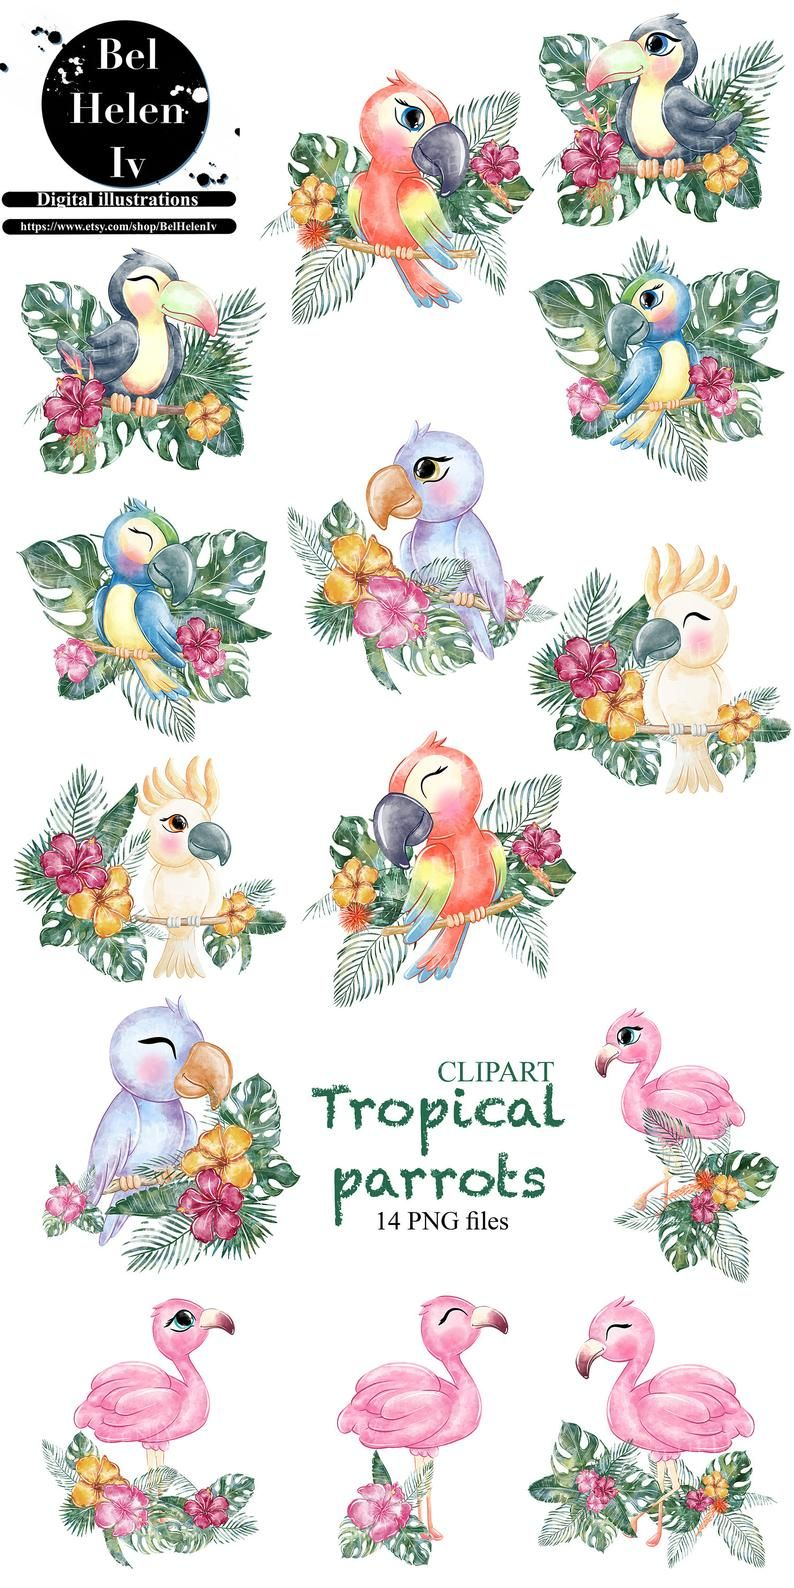 Tropical Flowers Iron On Tropical Parrot Scene Digital Artwork PNG File Clipart Children/'s Clothing DTG Printing Sublimation Design